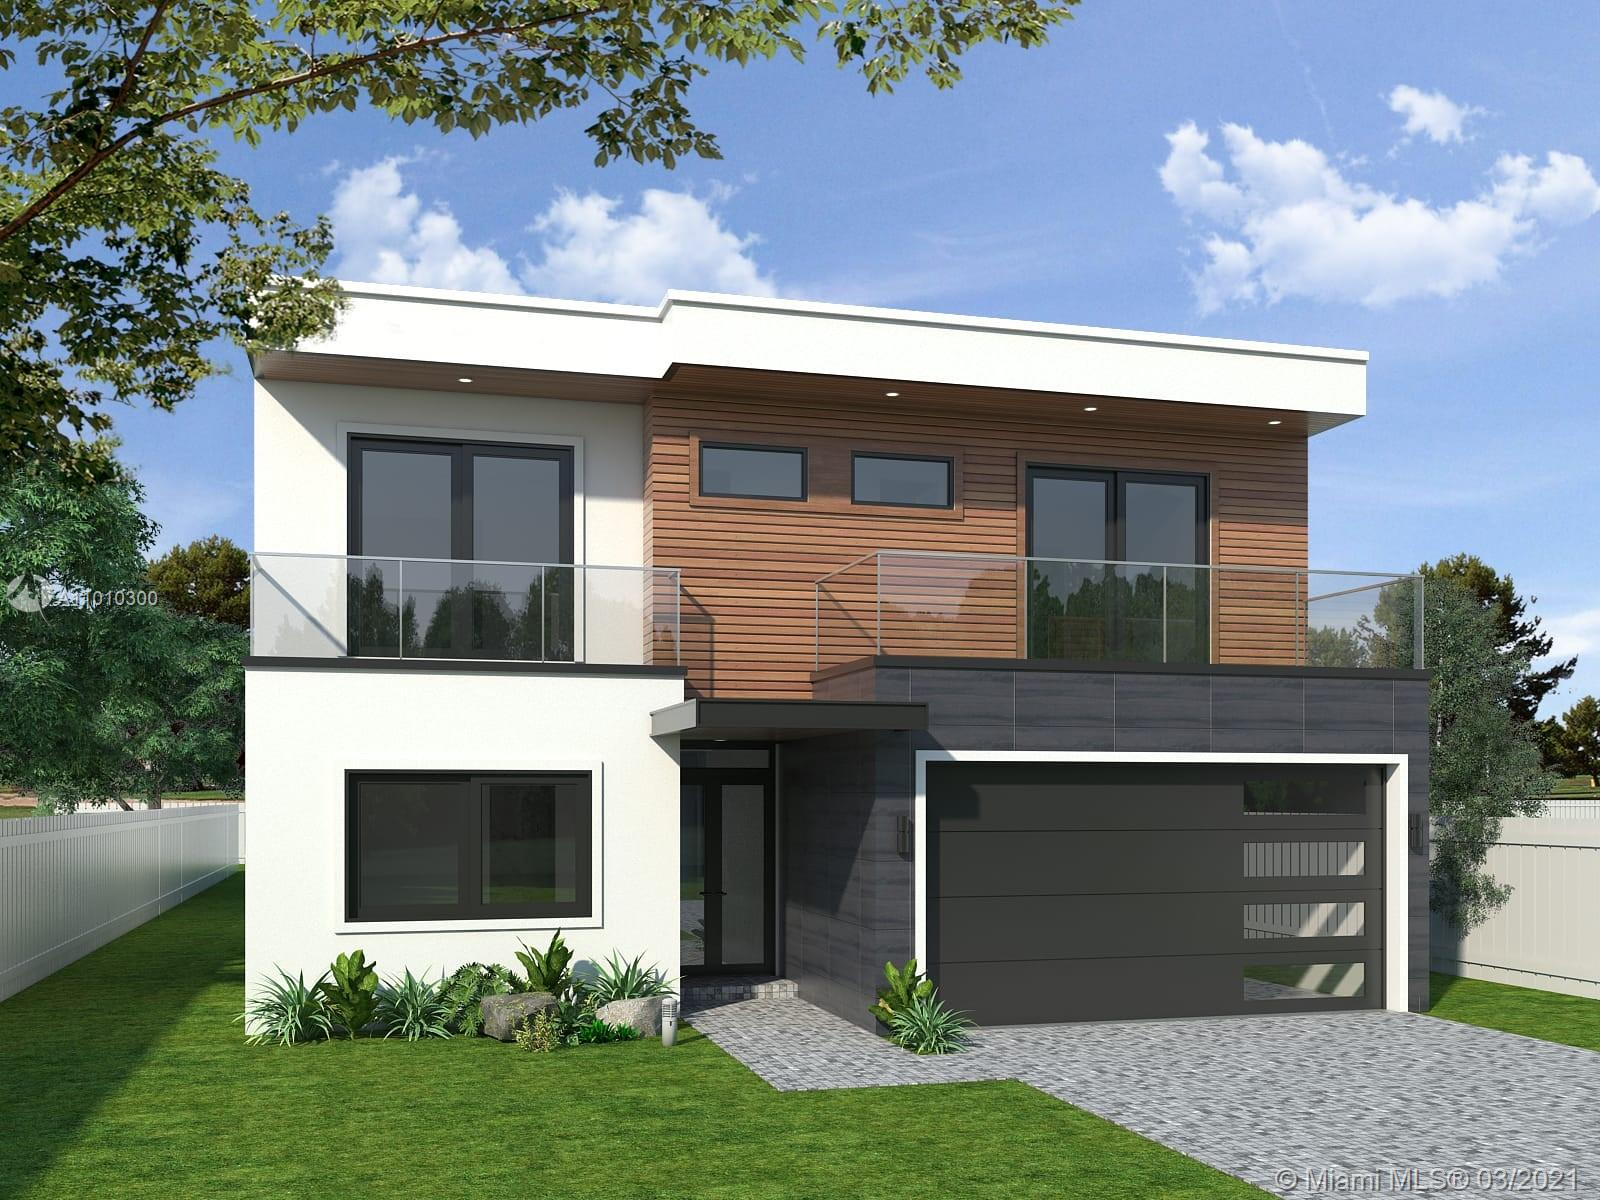 """New construction (CUSTOM FINISHES AVAILABLE) Brand new build in lovely victoria park. Property is still under construction, estimated completion time between March-June 2022 This beautiful modern home when completed will be 3997 SQFT (3011 SQFT under air) and boast four large bedrooms and five full bathrooms which finishes are completely customisable and buyers choice. A large pool (15x30ft) high-end finishes throughout entire house! Home comes pre-wired for """"smart home"""" features. This property is located in the heart of FT LAUDERDALE's Victoria Park, 1.5 miles from the beach, 5 minutes from Los olas 'strip' which contains plenty of restaurants and boutiques!"""